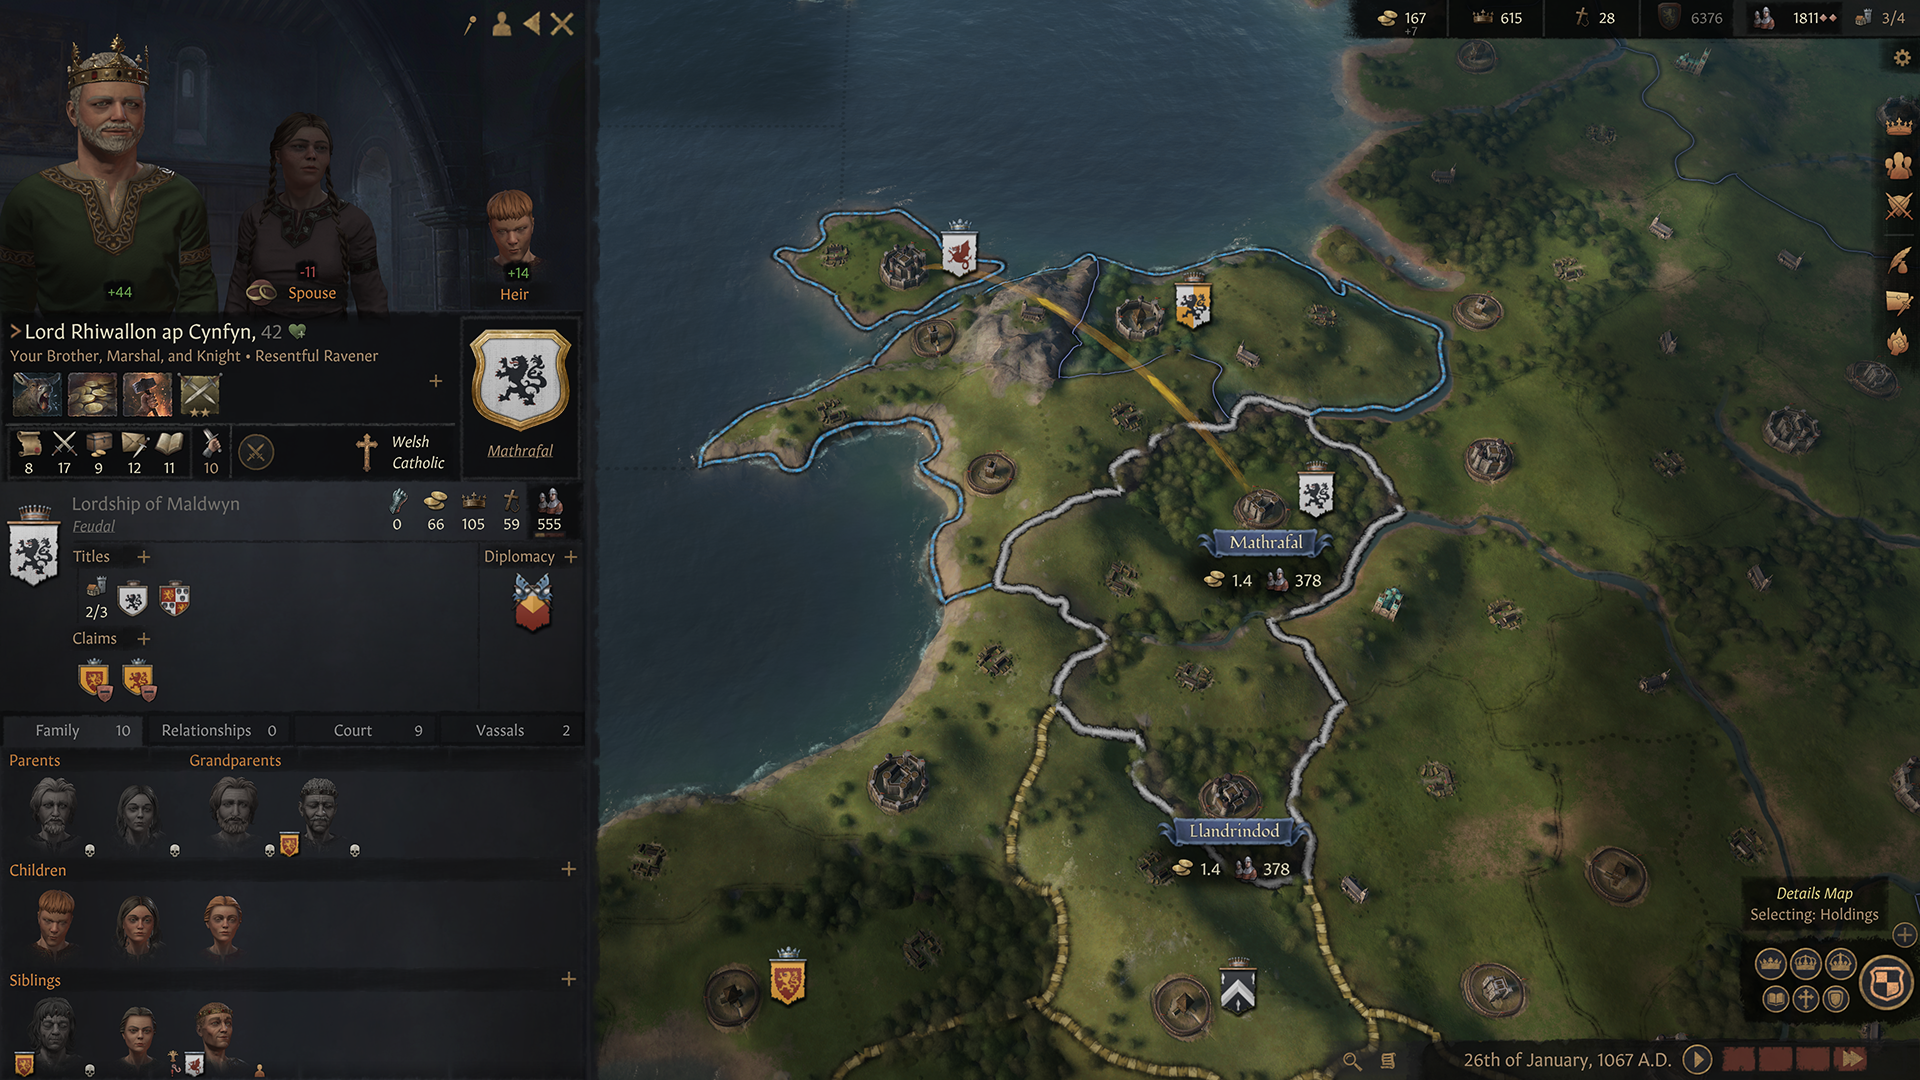 Pc Rpg Games 2020.Paradoxcon Crusader Kings 3 Is Coming To Pc And Xbox Game